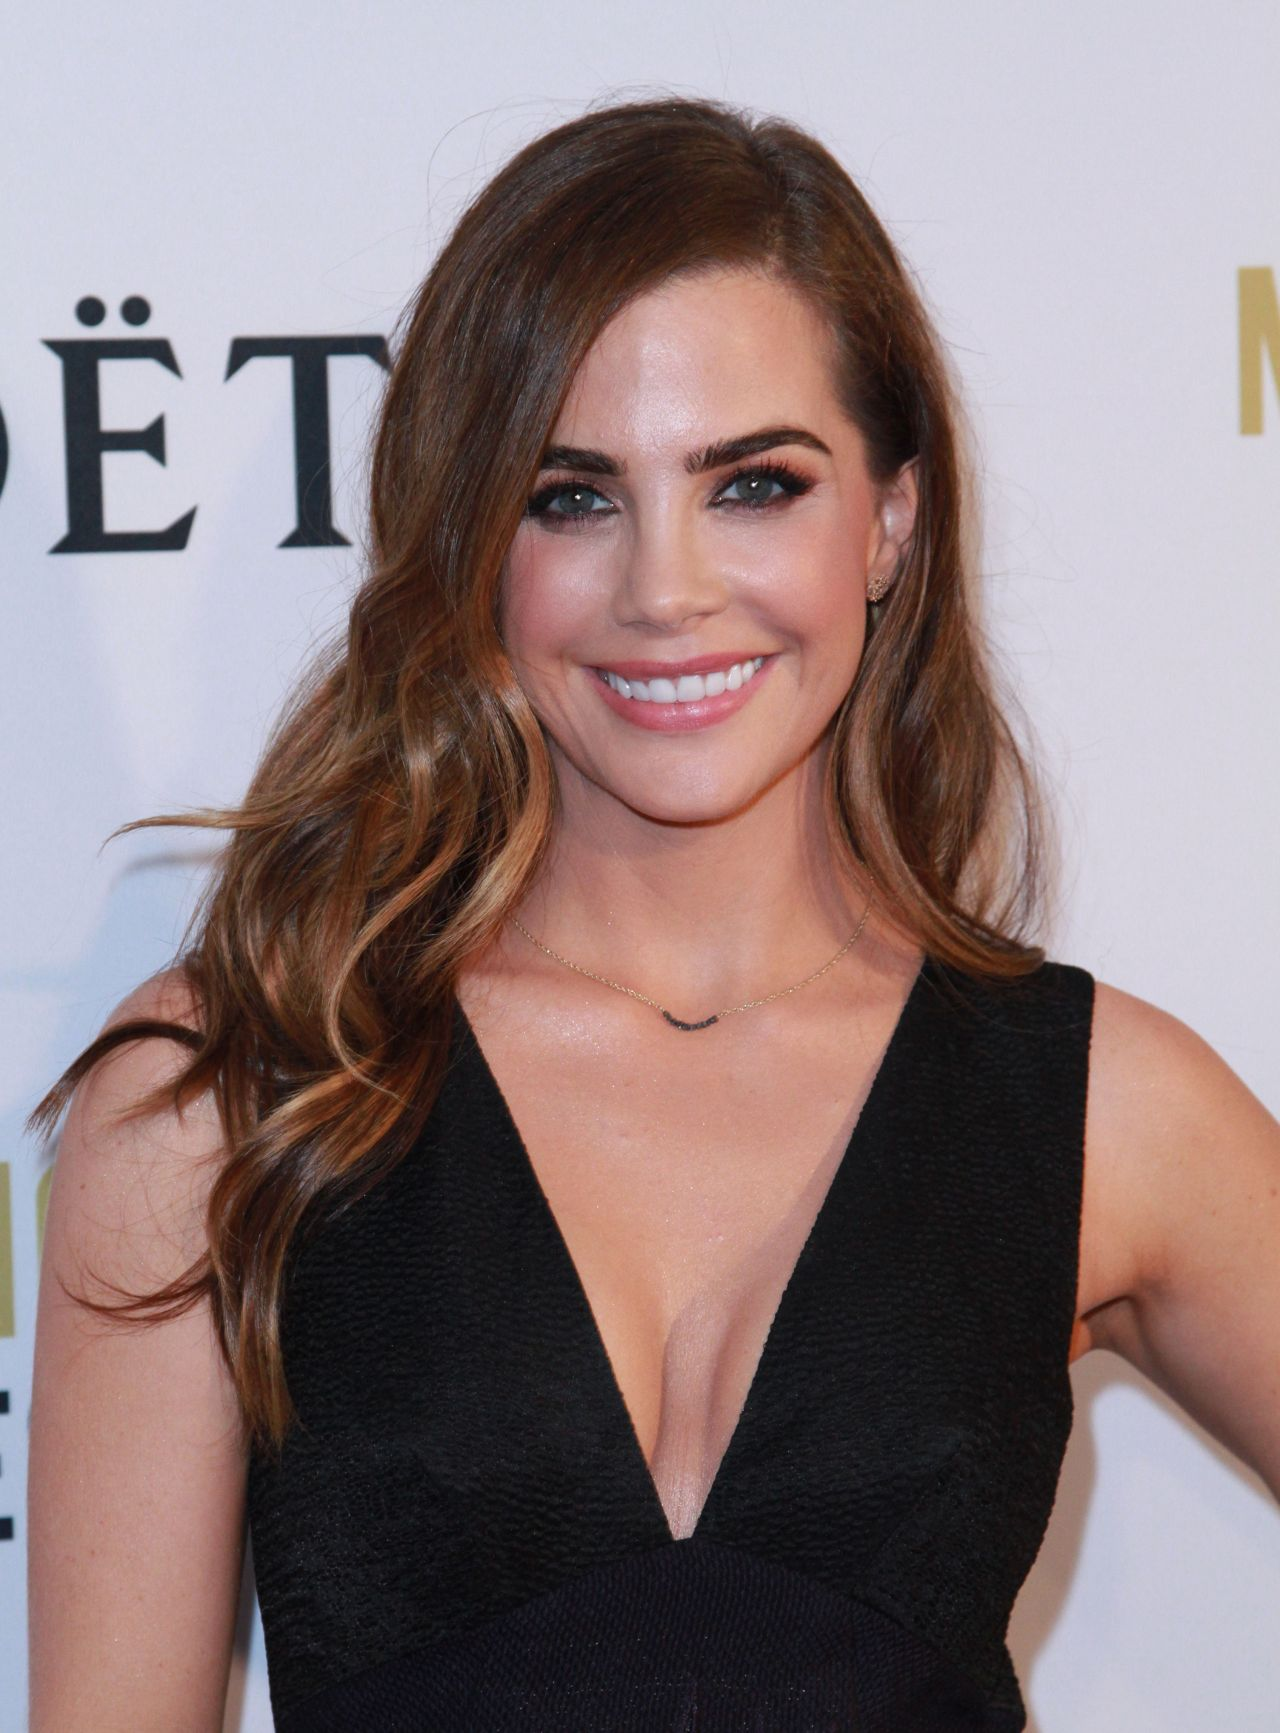 Jillian Murray naked (25 photo), pictures Topless, iCloud, in bikini 2016